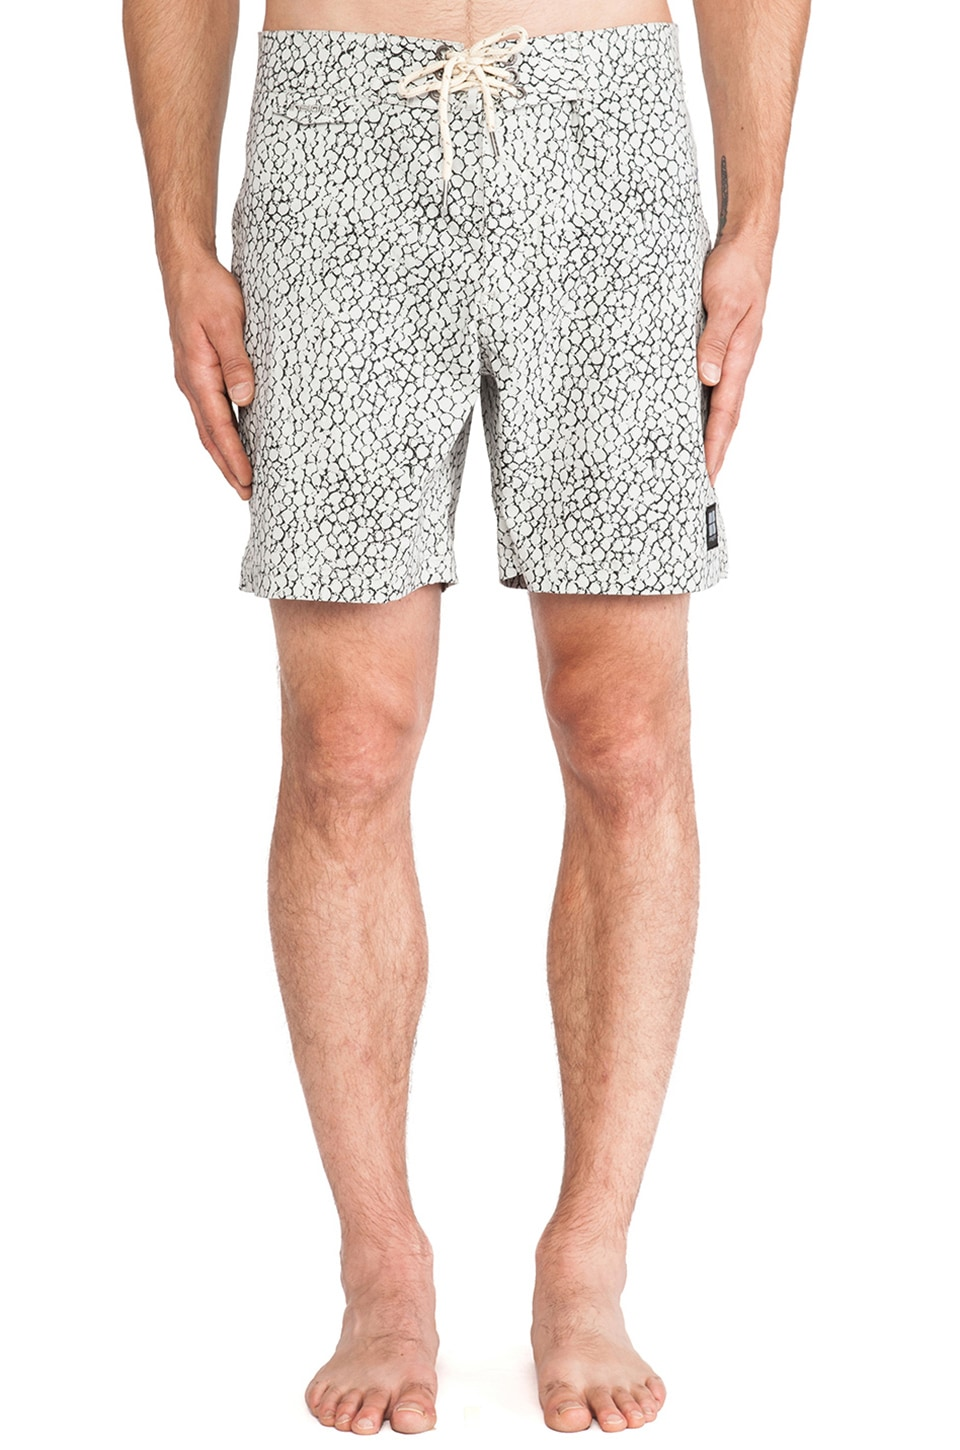 Insight Stingray Boardshort in Sting Ray Grey